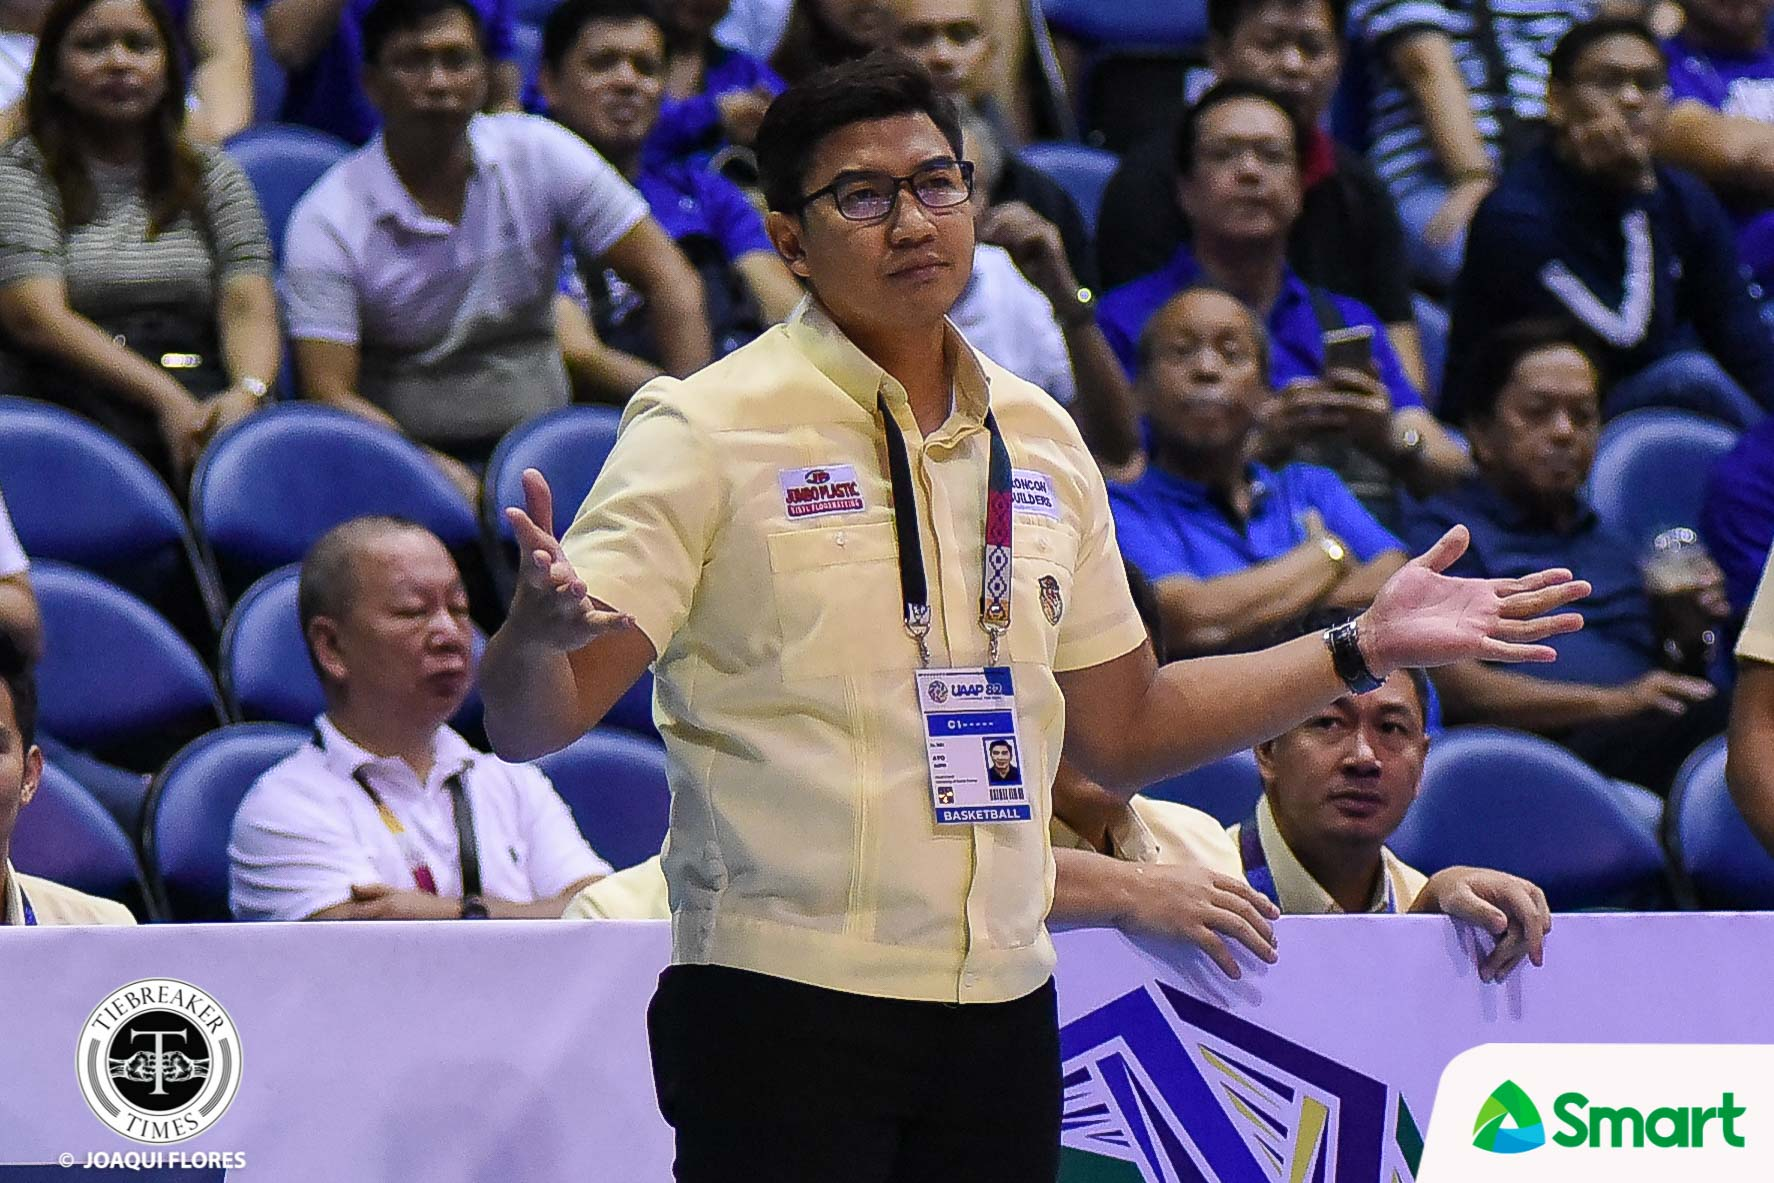 Tiebreaker Times UST assures appropriate action as 'Bicol bubble' probe begins Basketball News UAAP UST  UST Men's Basketball UAAP Season 83 Men's Basketball UAAP Season 83 Coronavirus Pandemic Aldin Ayo